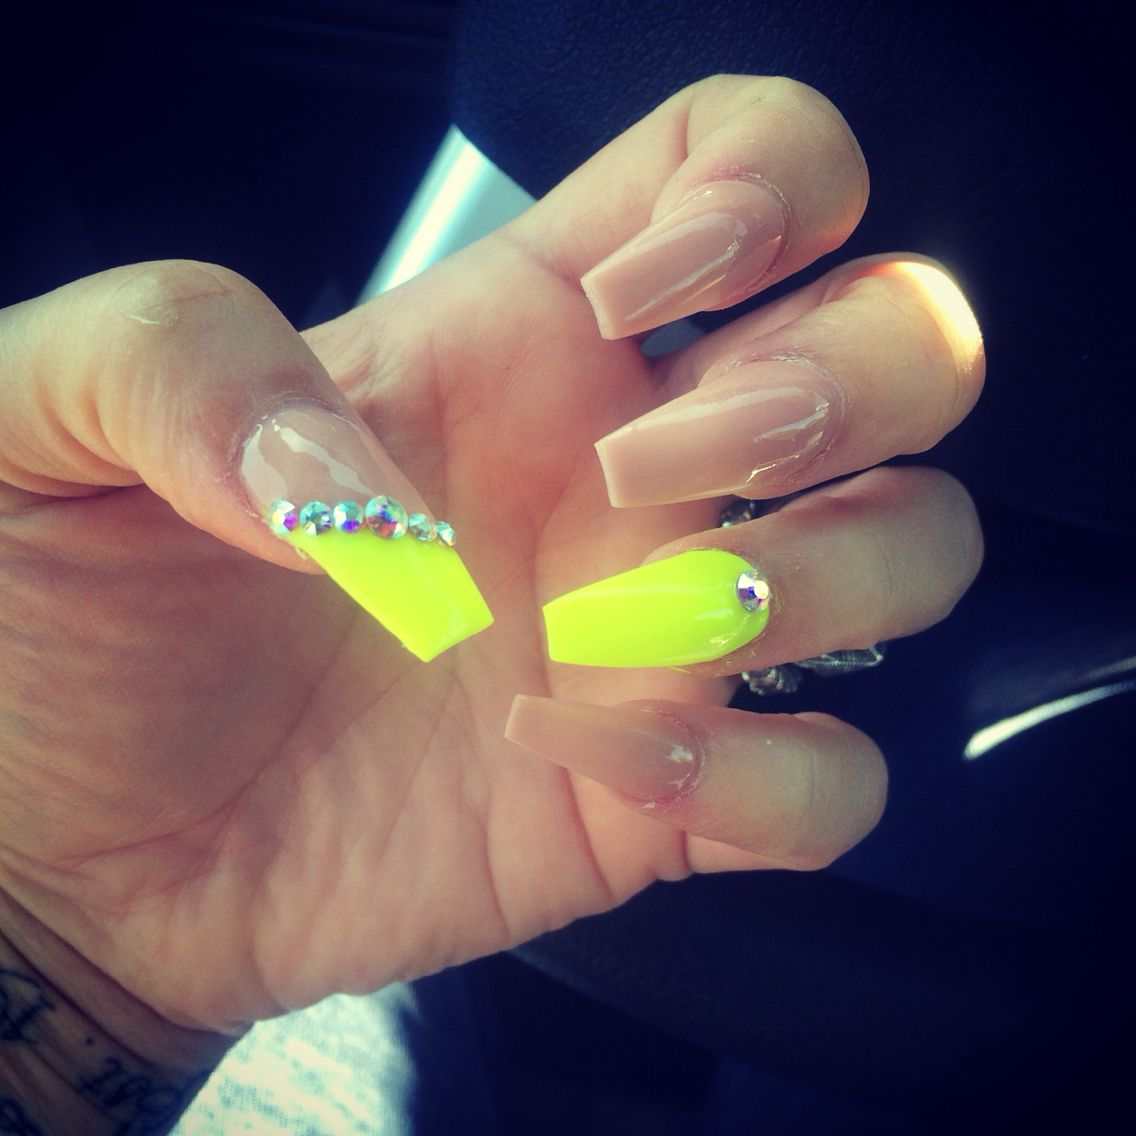 Loving my nails!! Neon yellow n classic nude | Beauty and makeup ...